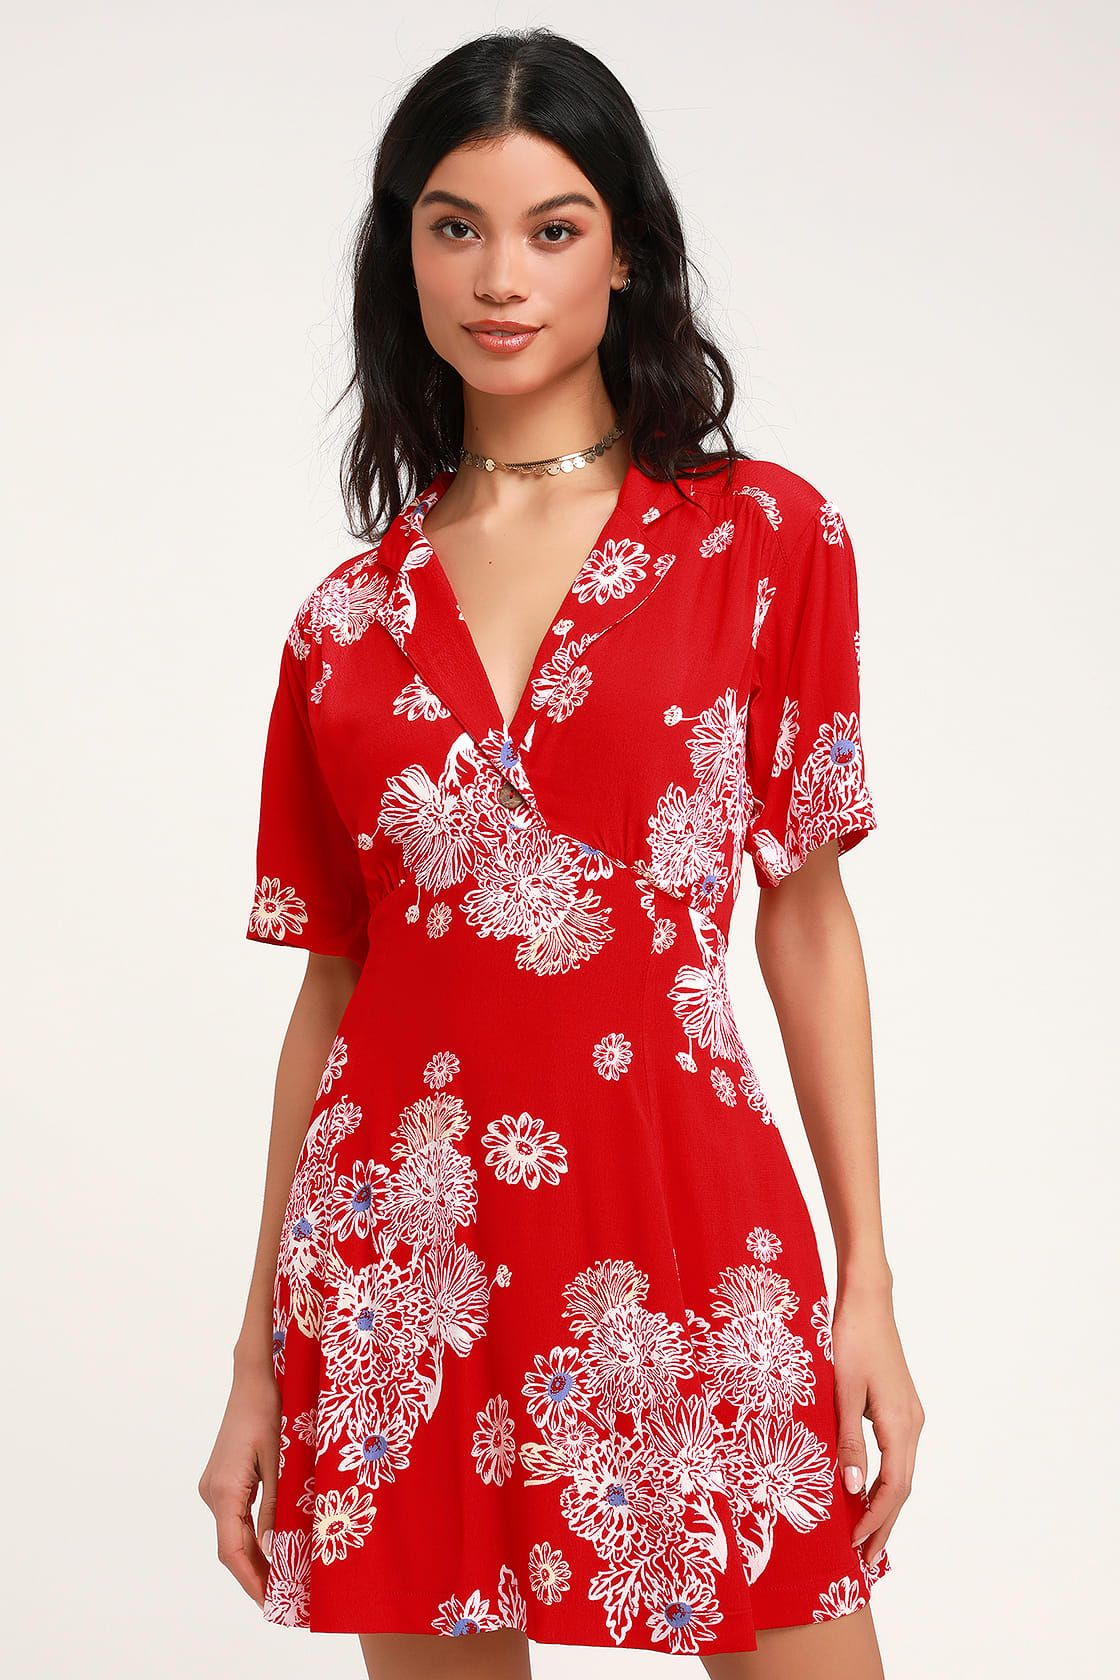 Blue Hawaii Red Floral Print Short Sleeve Mini Dress Short Sleeve Mini Dress Red Mini Dress Cute Red Dresses